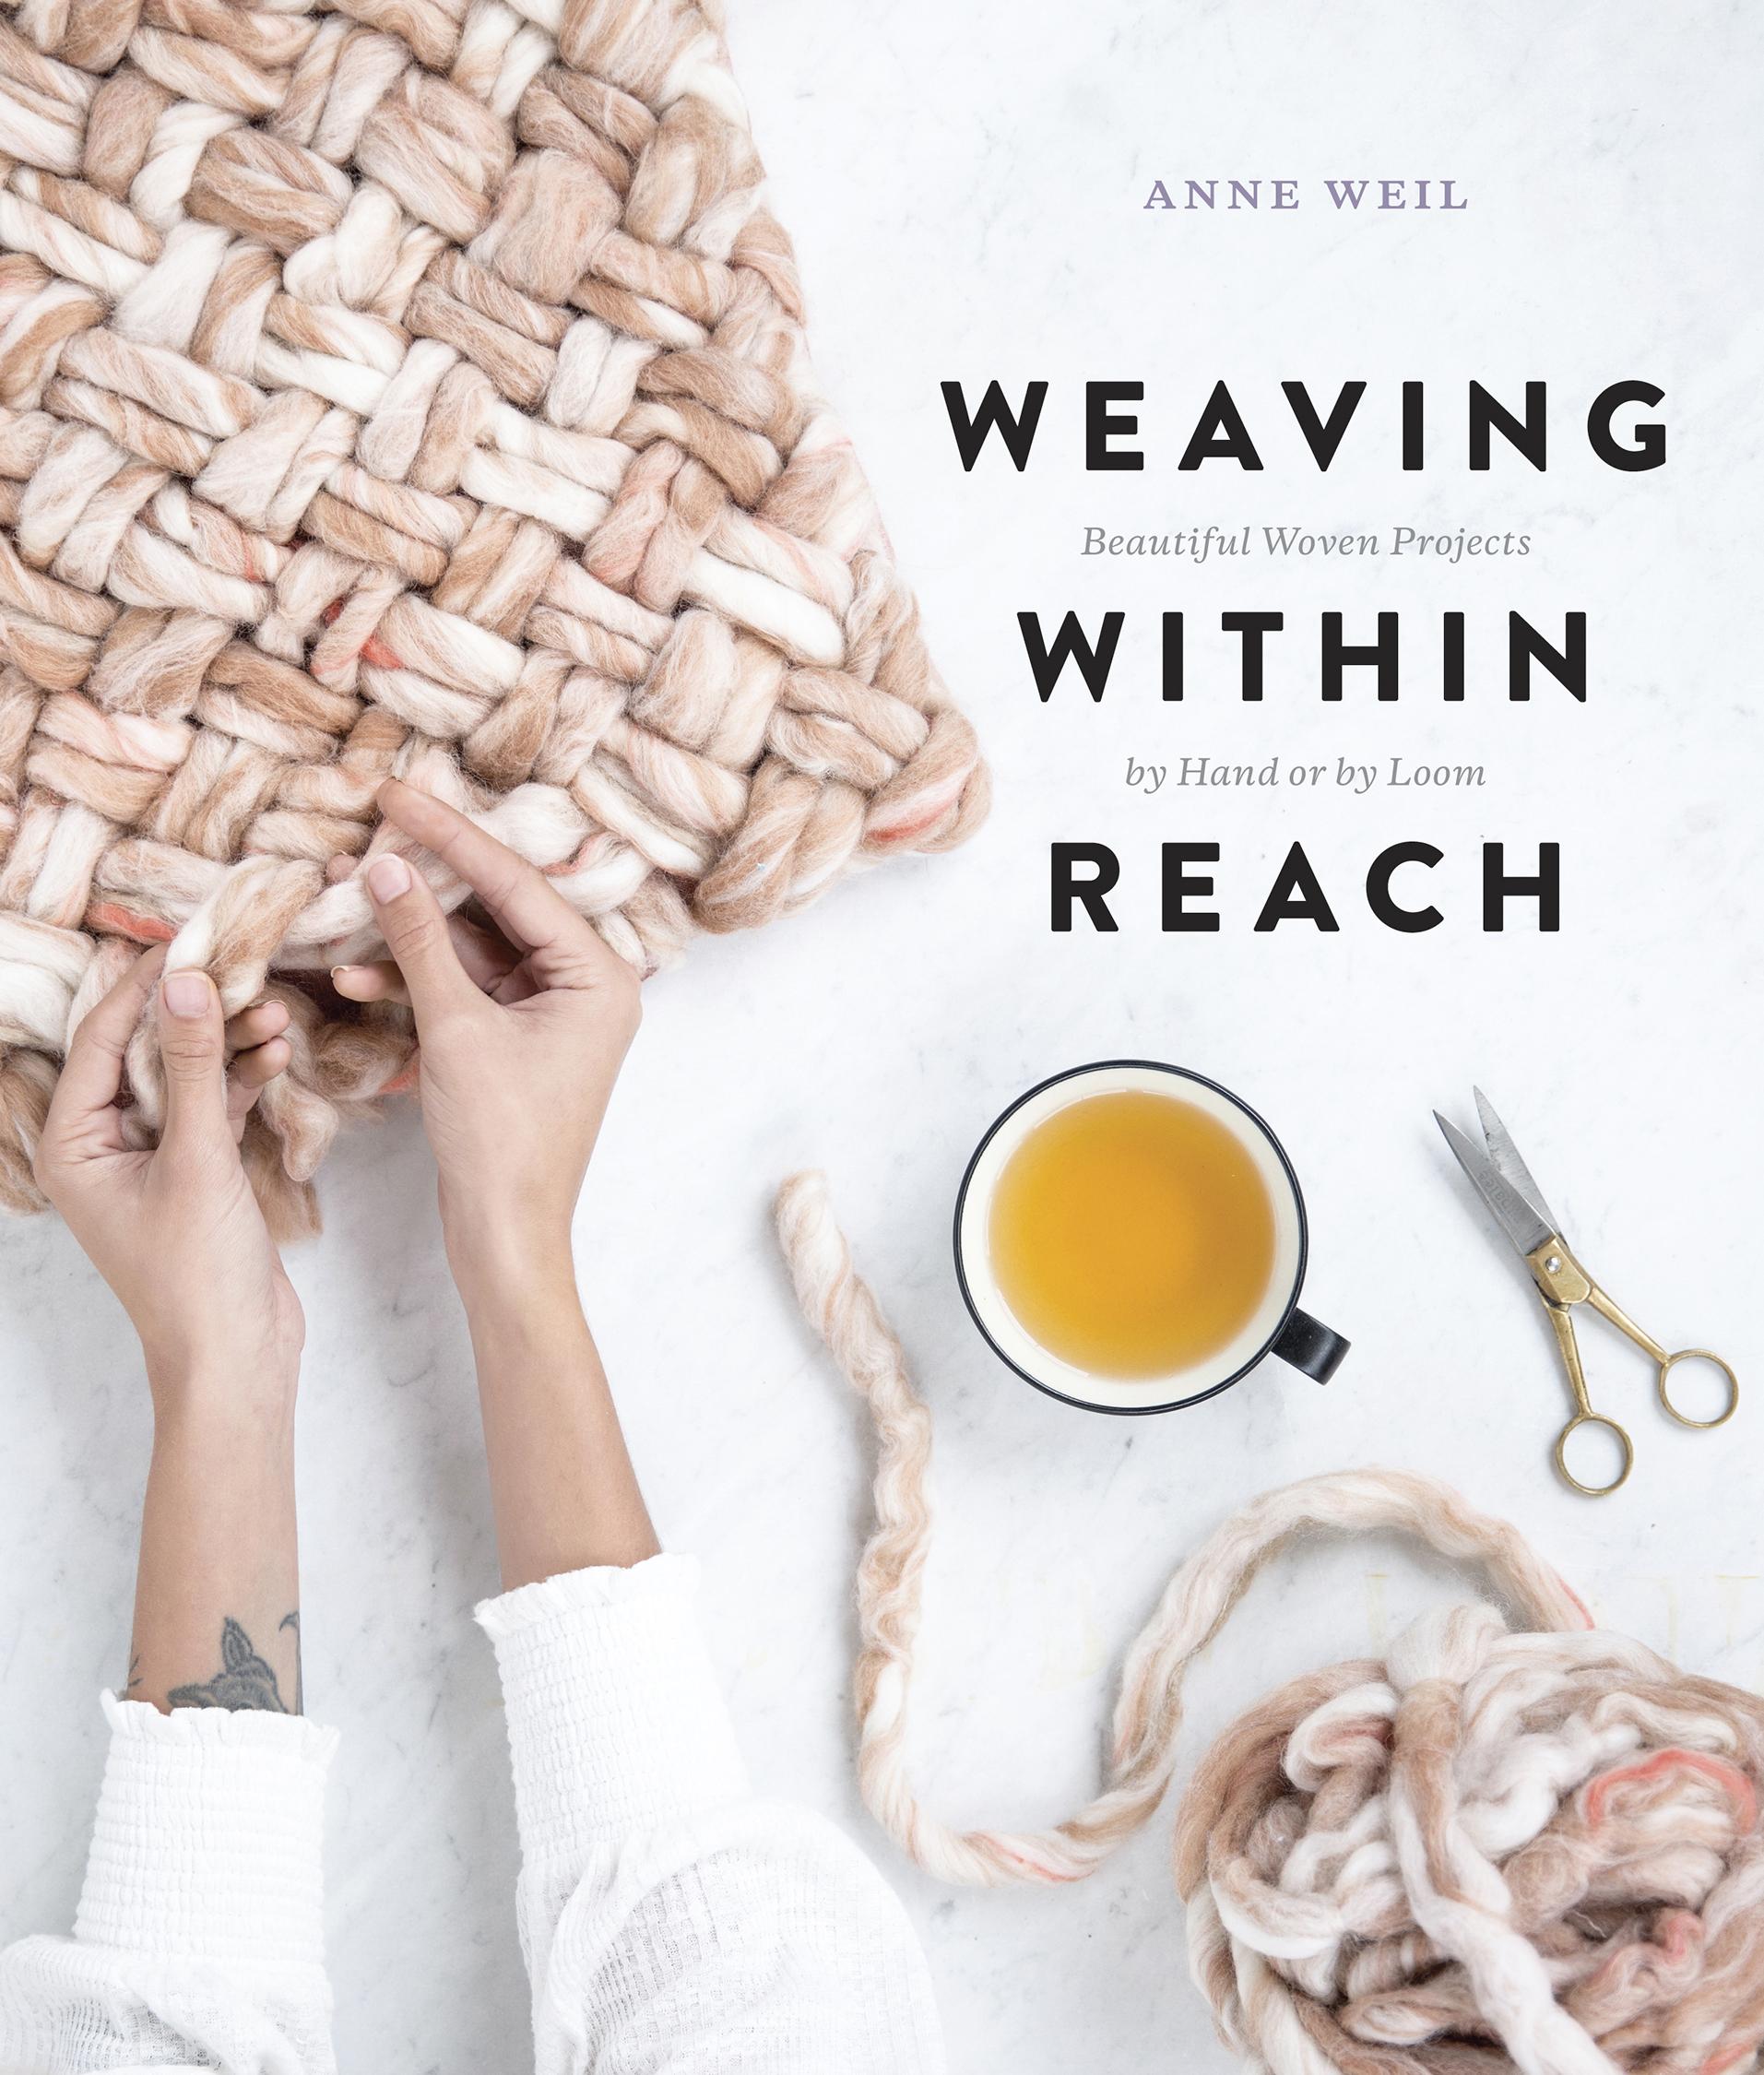 Cover image of Anne Weil's book Weaving Within Reach, photographed by Rebecca Stumpf Denver Lifestyle Photographer.